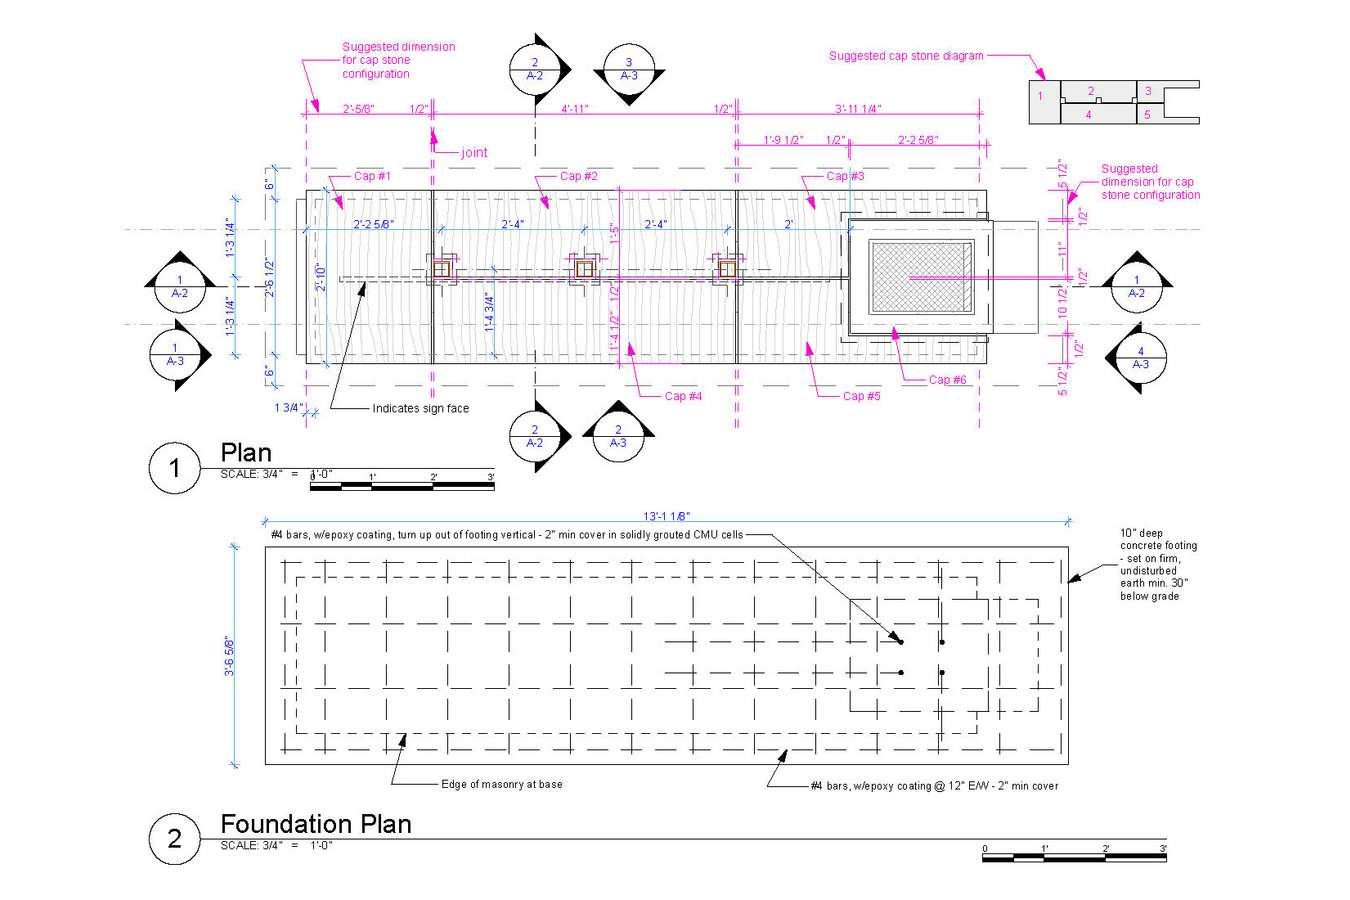 4A Flrpln pg8 : Plans and Elevations